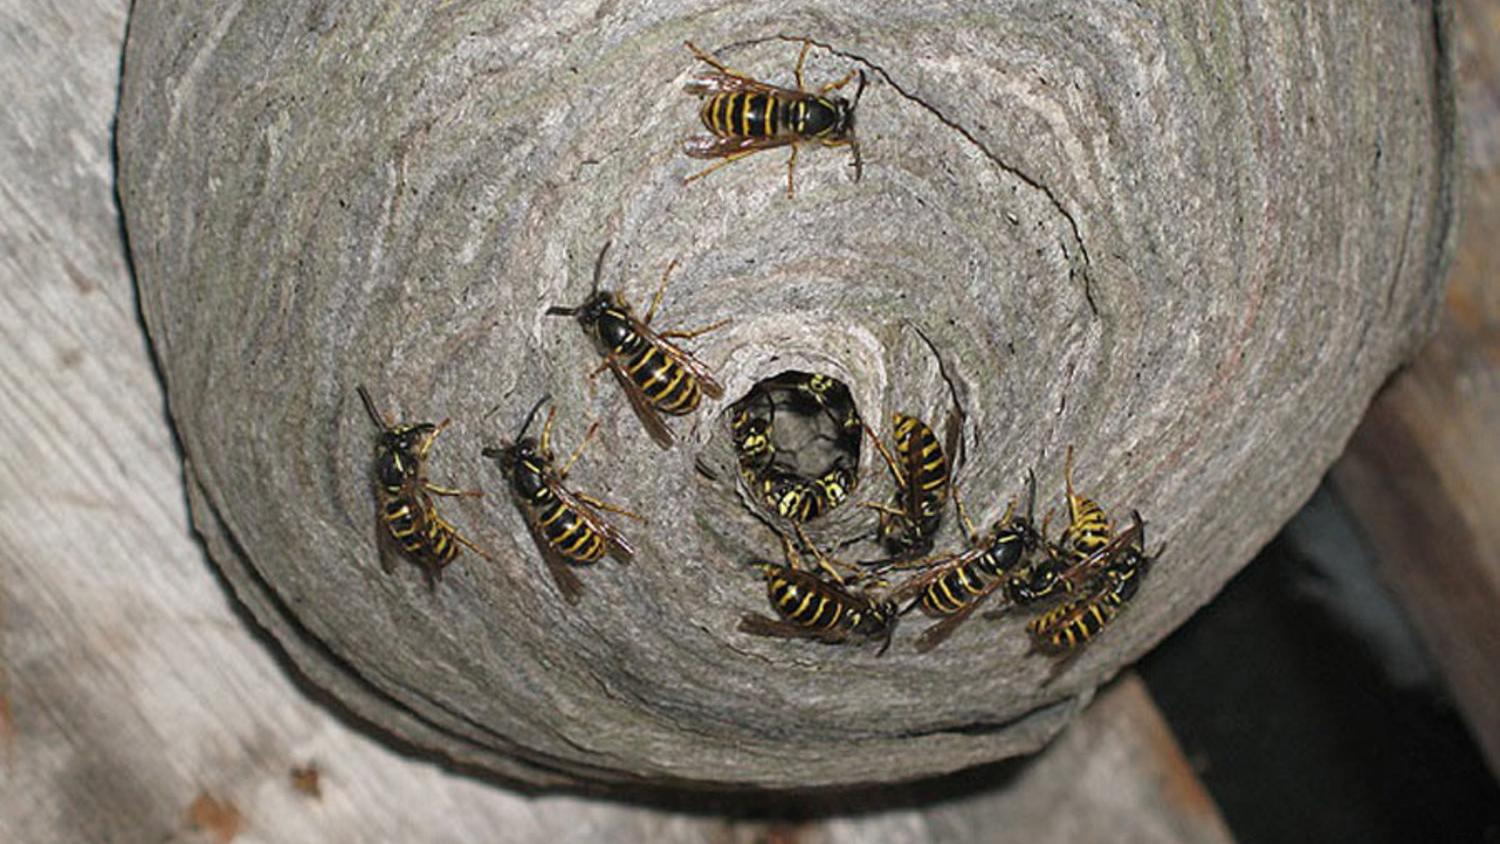 The nests of most true paper wasps are characterized by having open combs with cells for brood rearing and a petiole or constricted stalk that anchors the nest